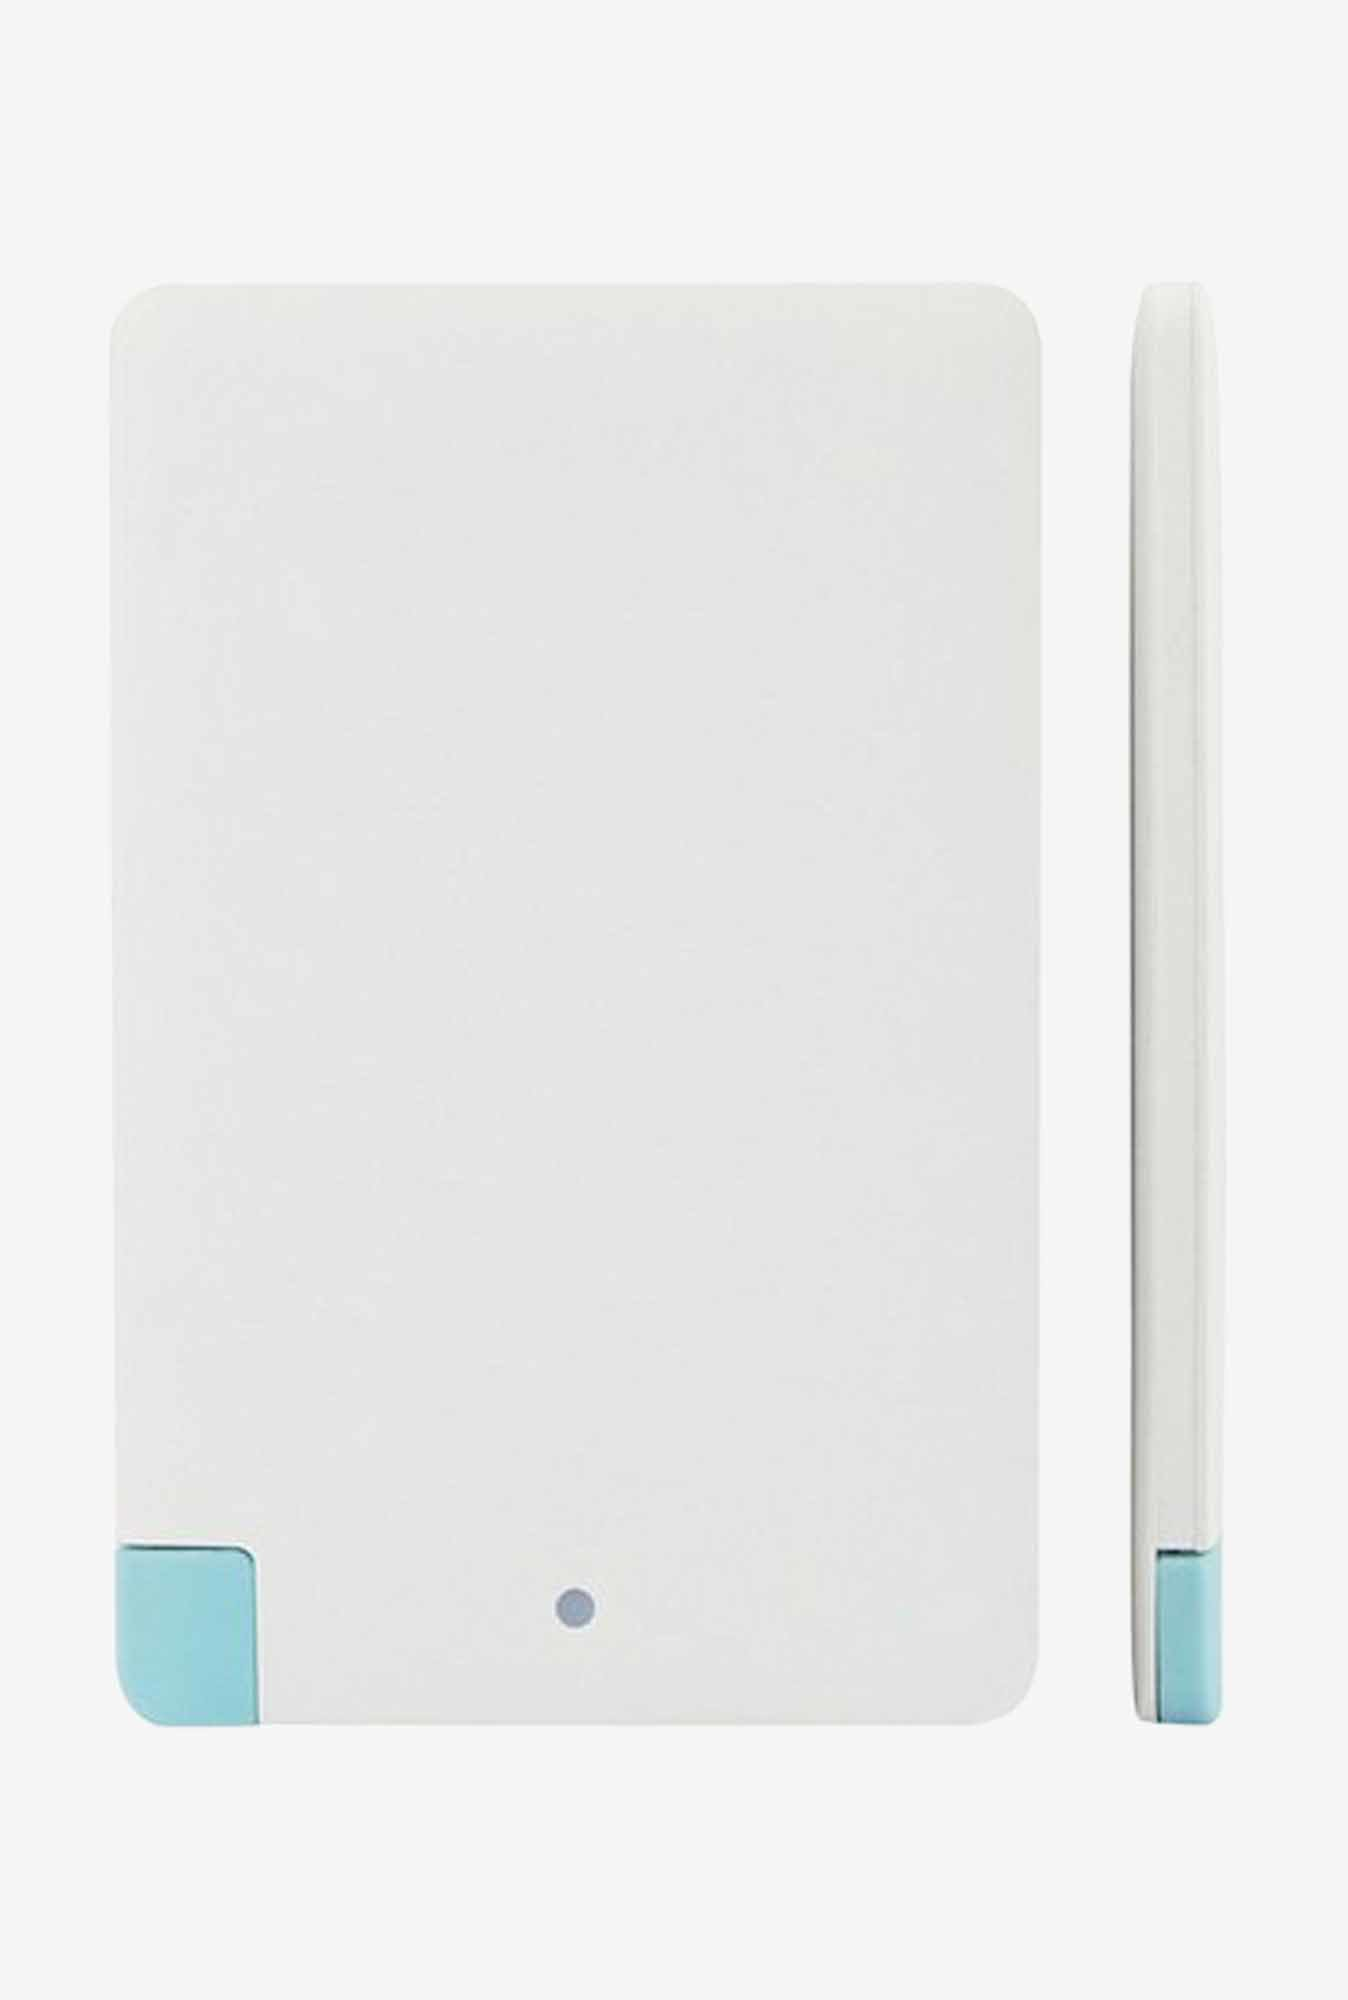 Callmate Power Card 4000 mAh Power Bank (White)